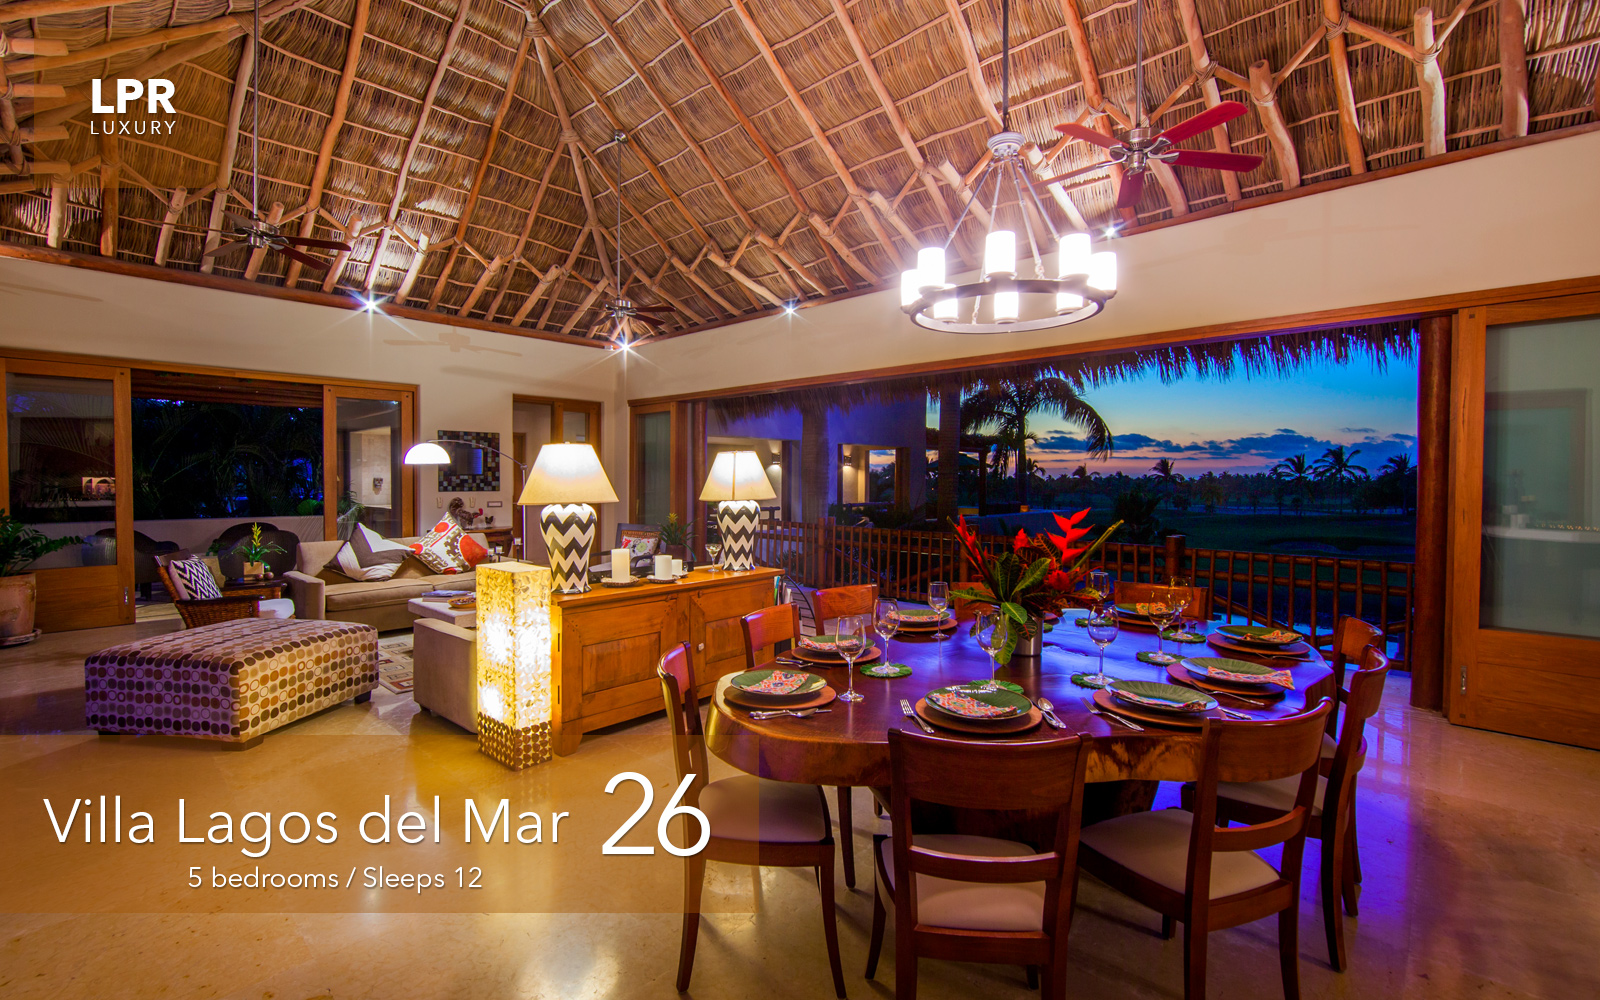 Villa Lagos del Mar 26 - Luxury vacation rental villa at the Punta Mita Resort - Luxury real estate for sale